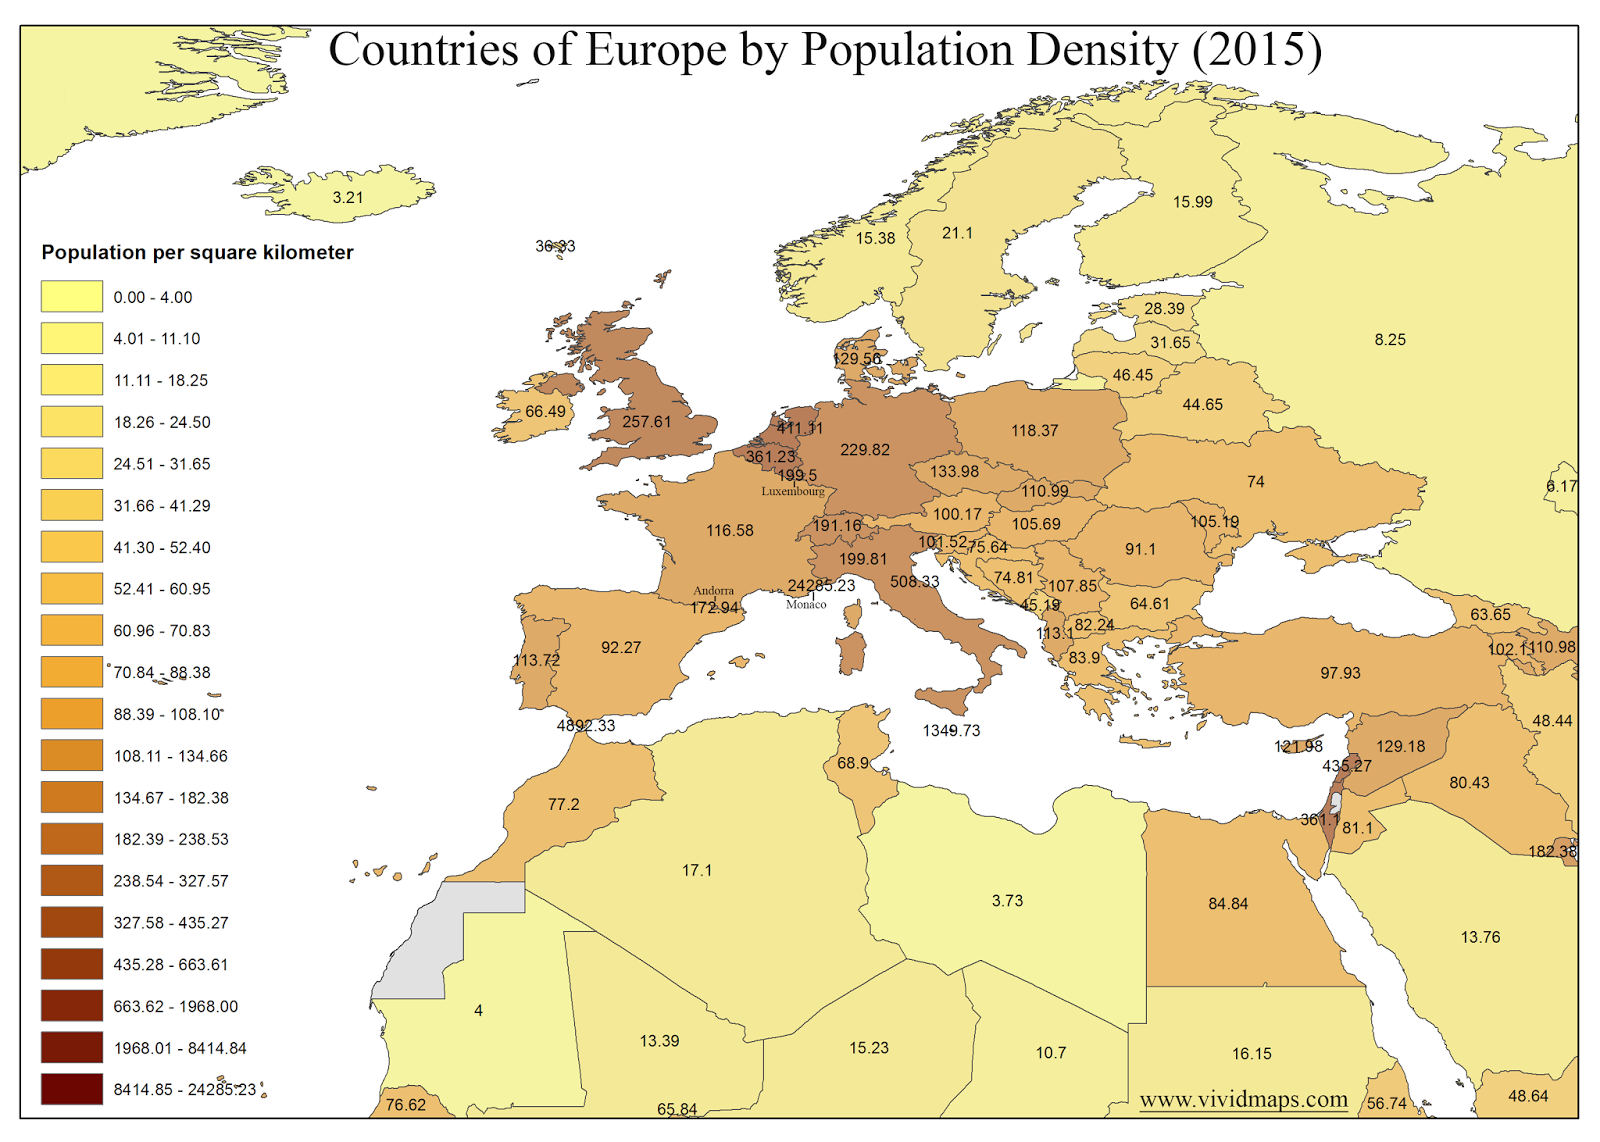 Countries of Europe by Population Density (2015)